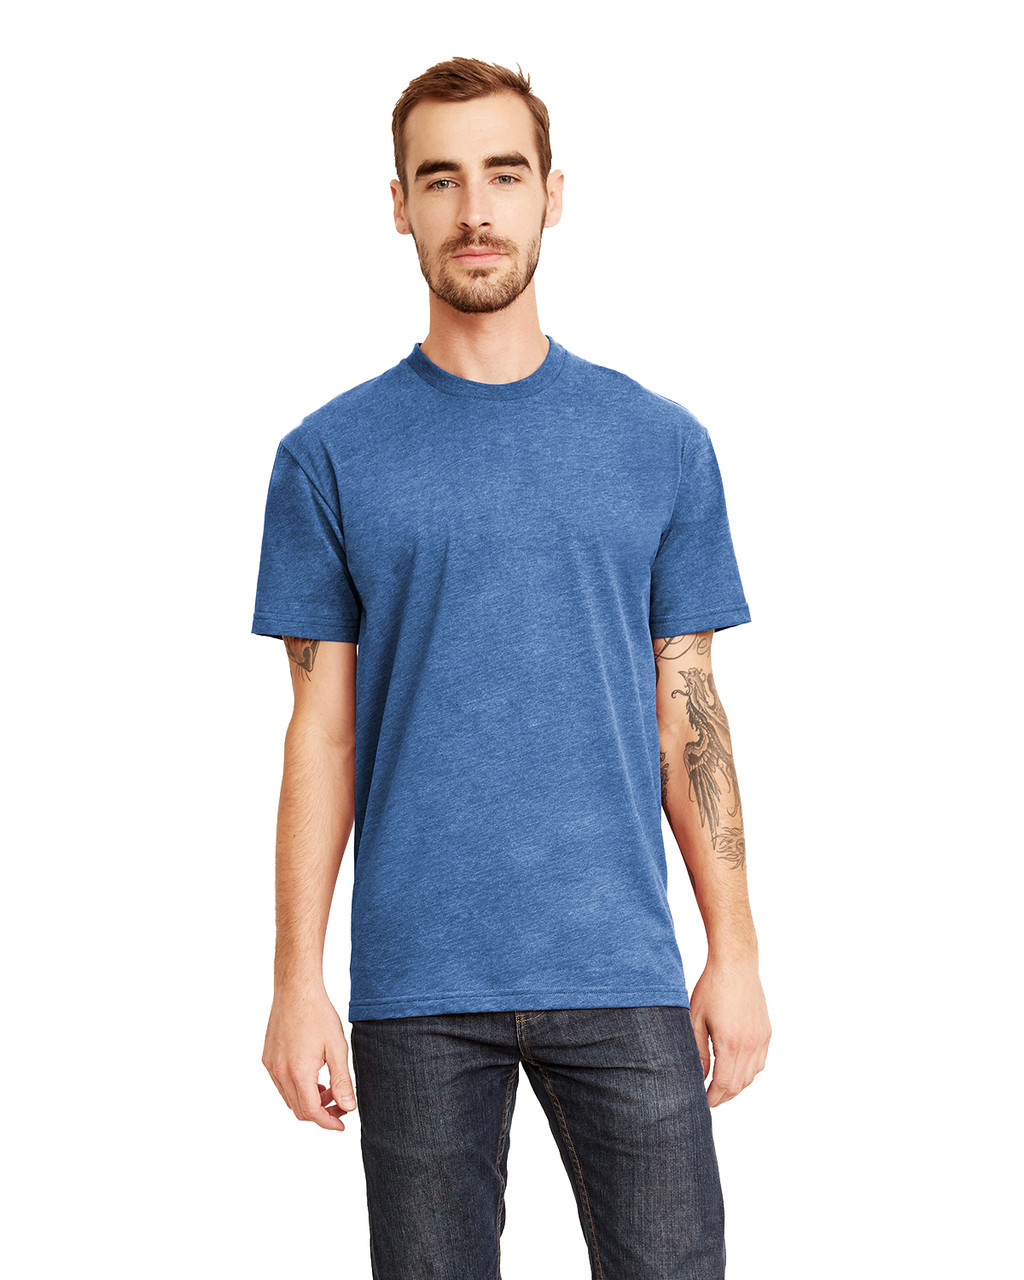 Heather Cool Blue - 6410 Next Level Men's Premium Fitted Sueded T-Shirt | Blankclothing.ca